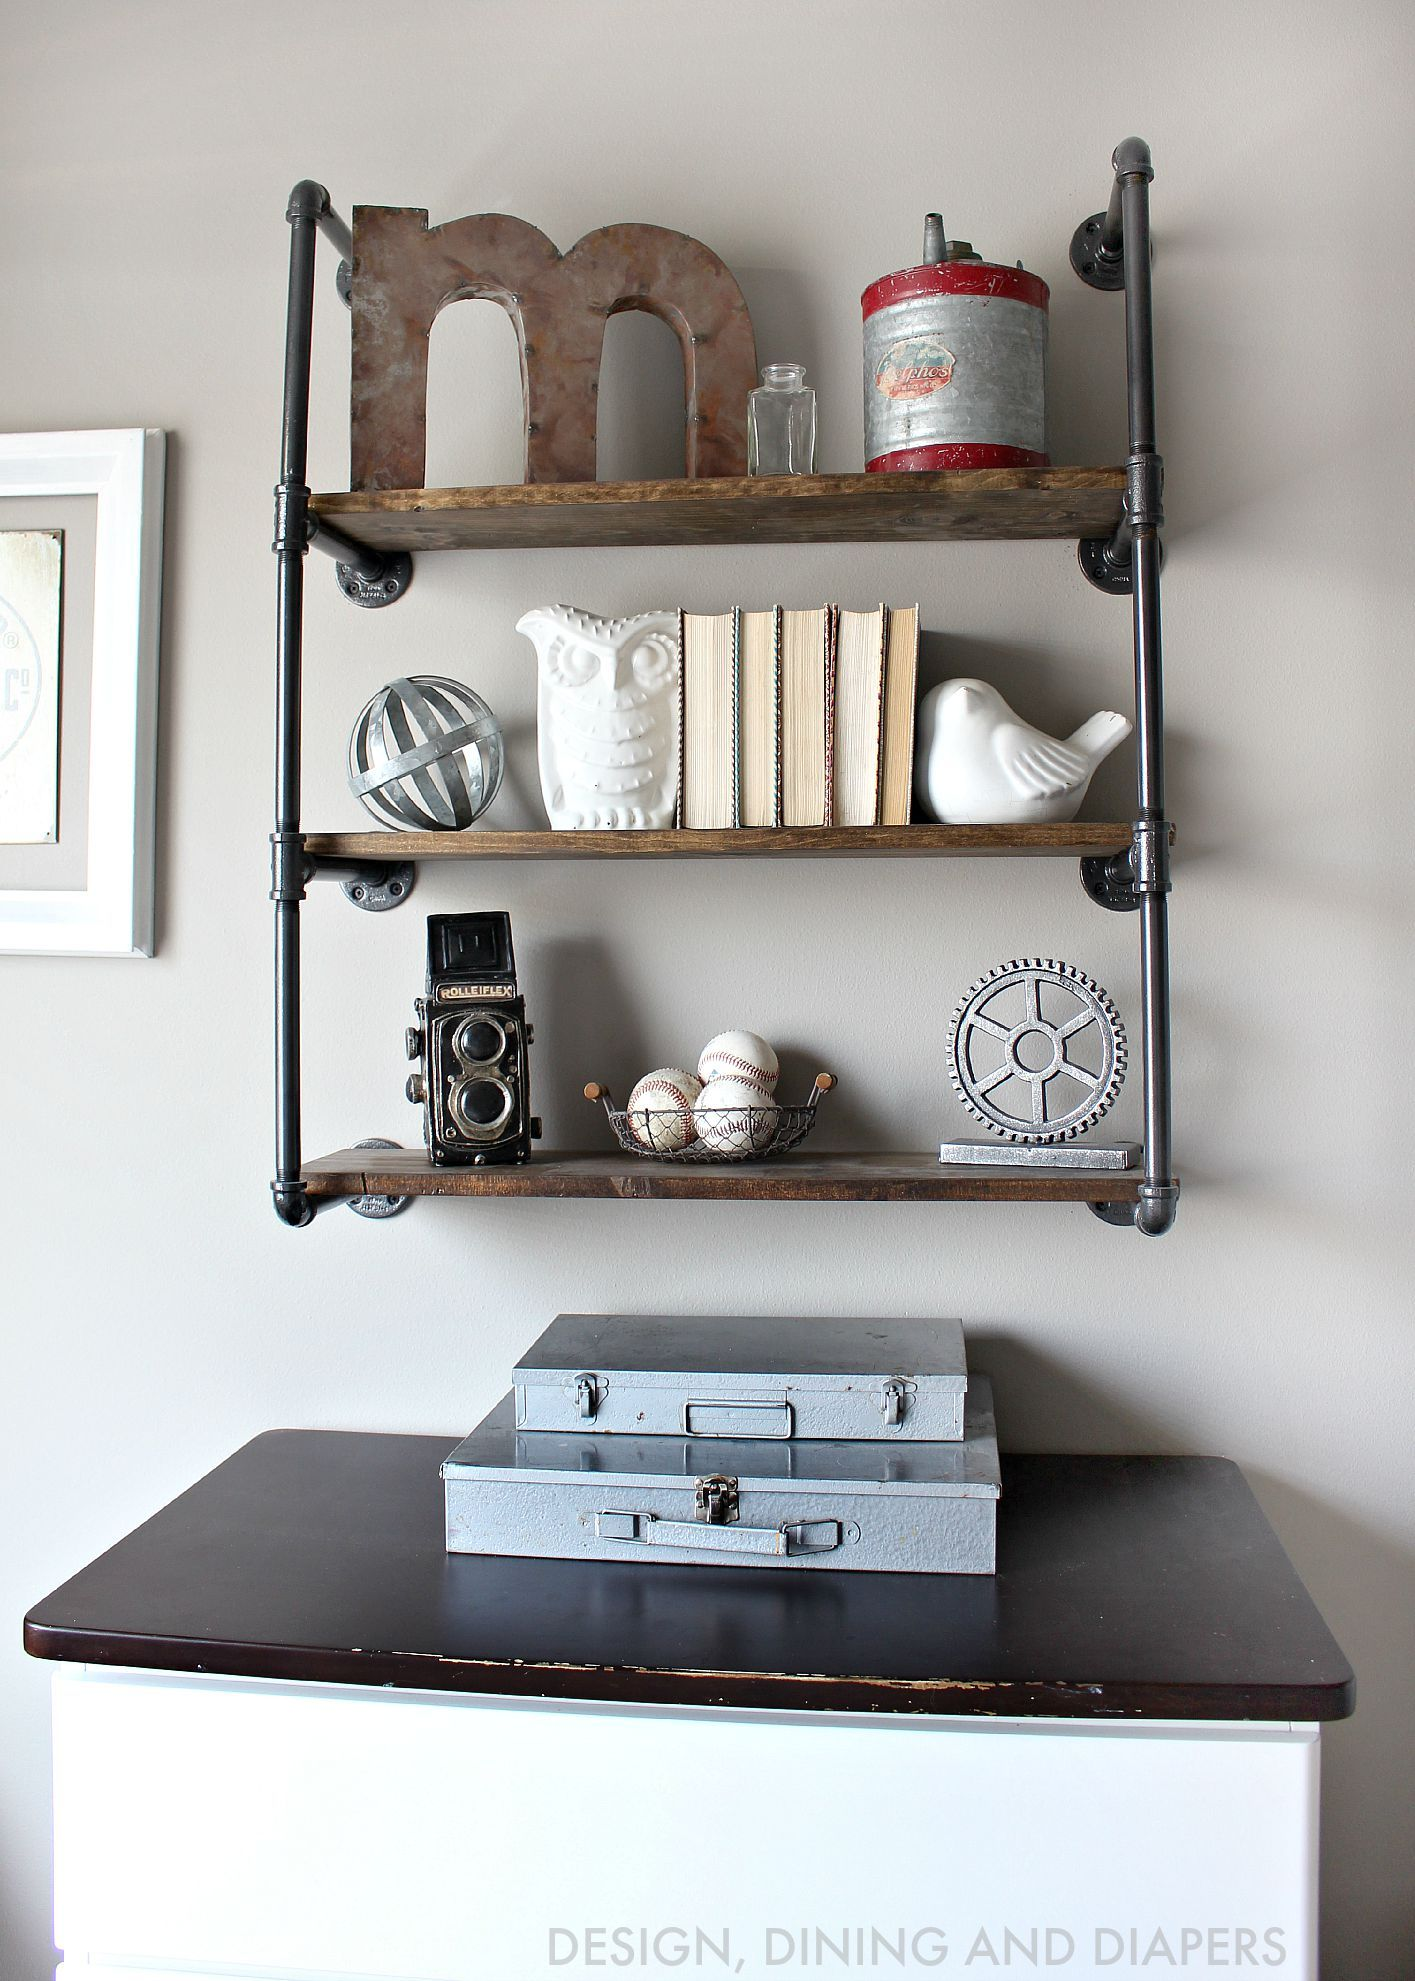 Kids Bedroom Shelving Rustic Toddler Boys Room Pipes Industrial And Shelves